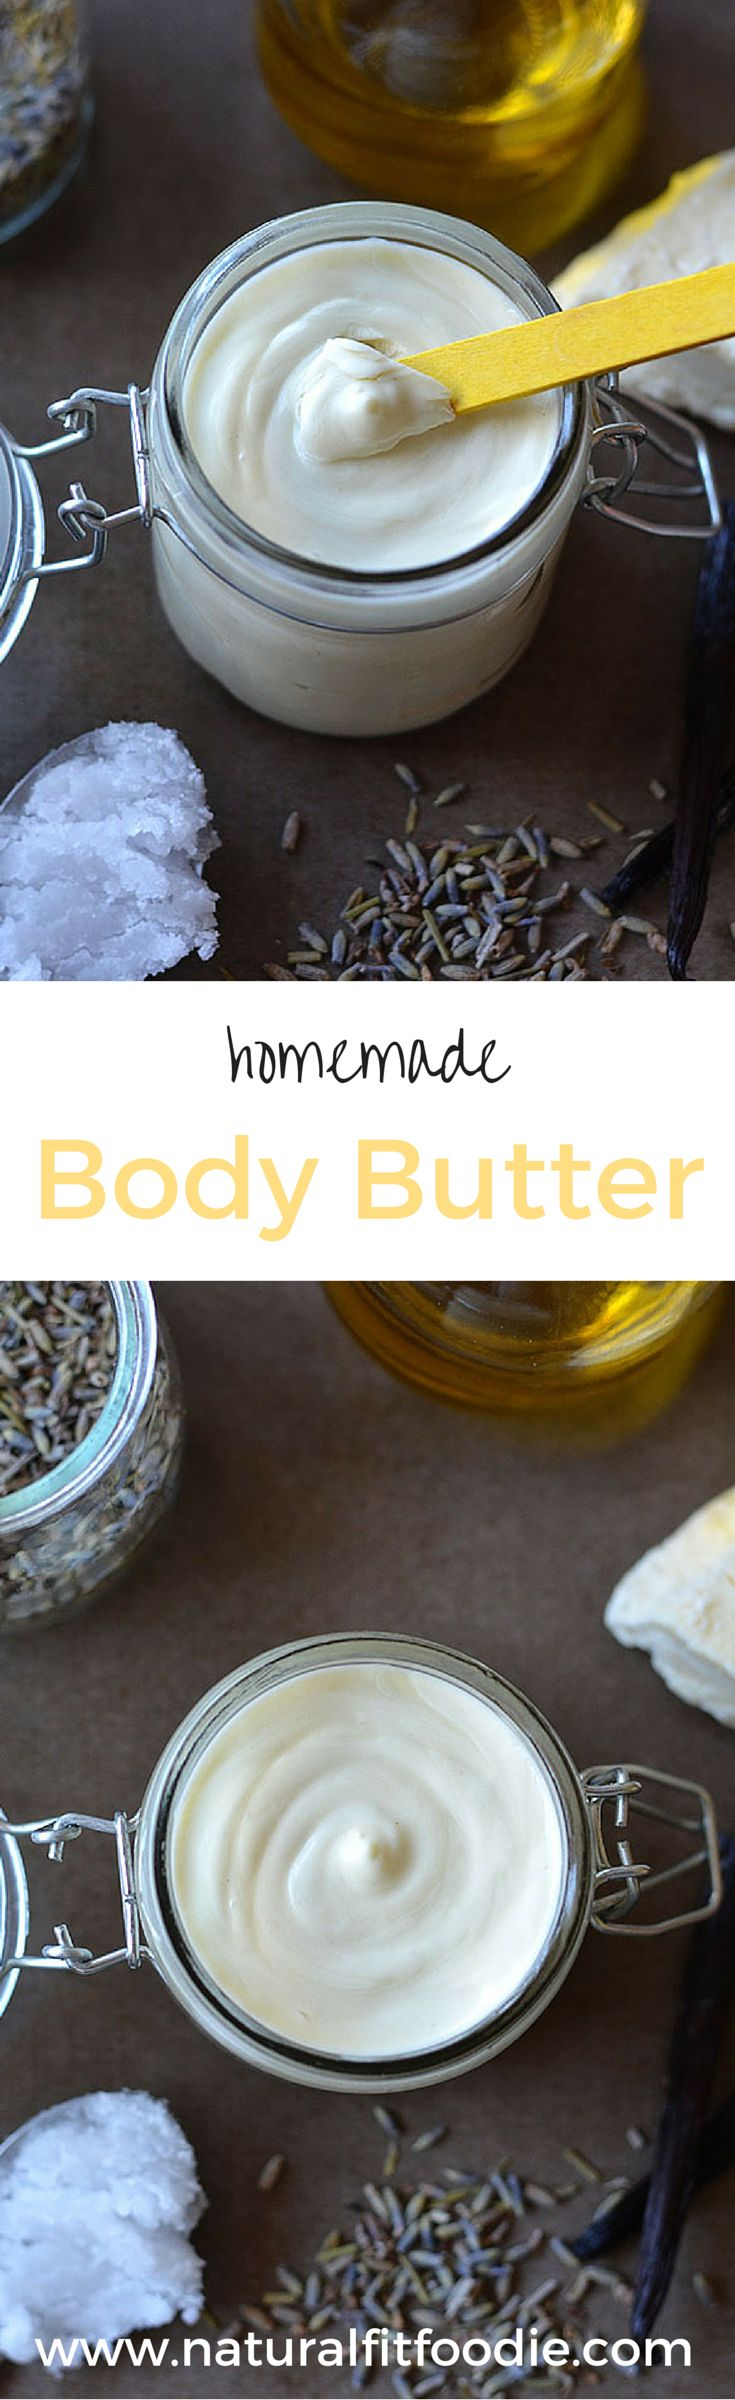 Homemade Body Butter - This luxurious homemade body butter is a real workhorse product. Use it for dry skin relief, as a diaper cream, belly butter, shave cream, baby eczema cream, nipple cream, cradle crap cream and so much more!